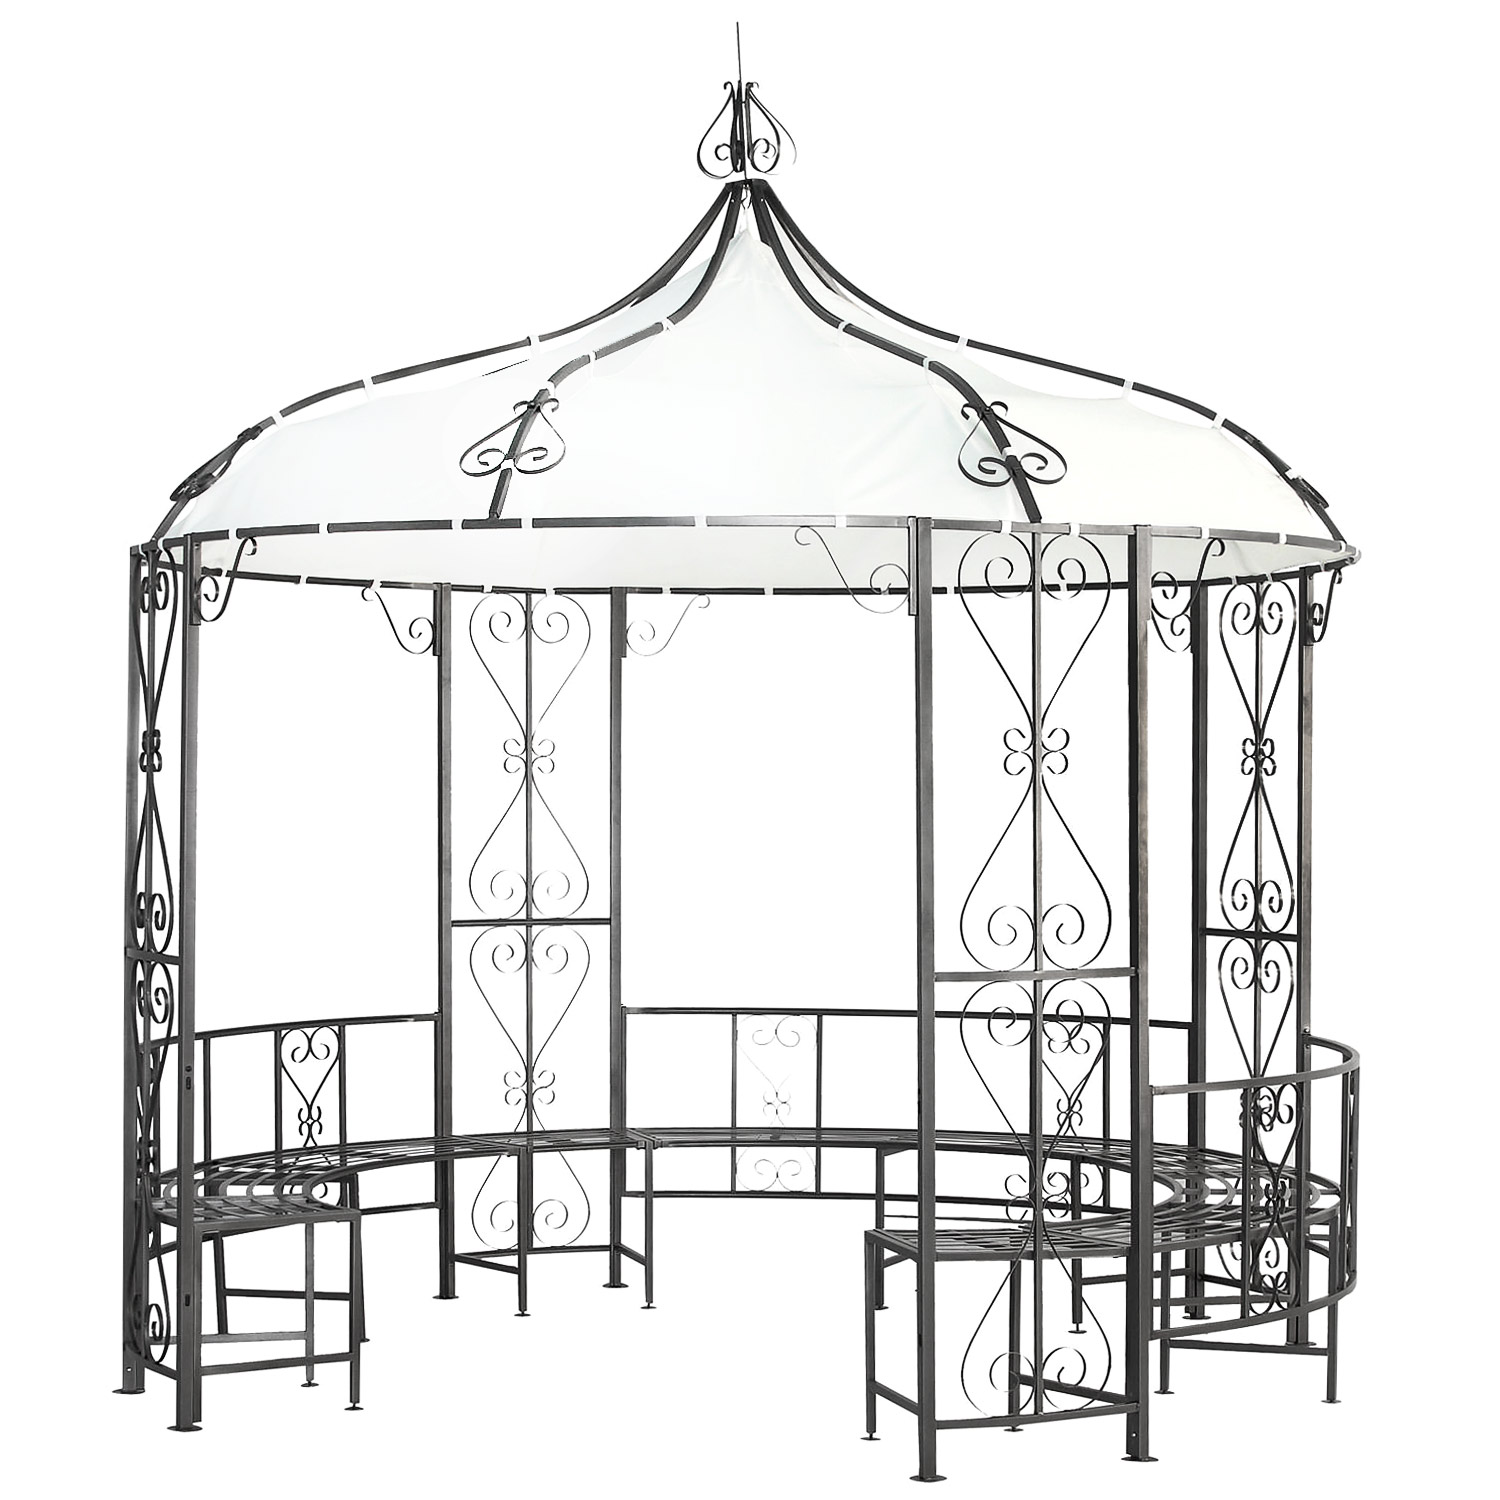 gazebo 3x3 x2 9 m garten pavillion pavillon zelt metall partyzelt gartenpavillon ebay. Black Bedroom Furniture Sets. Home Design Ideas